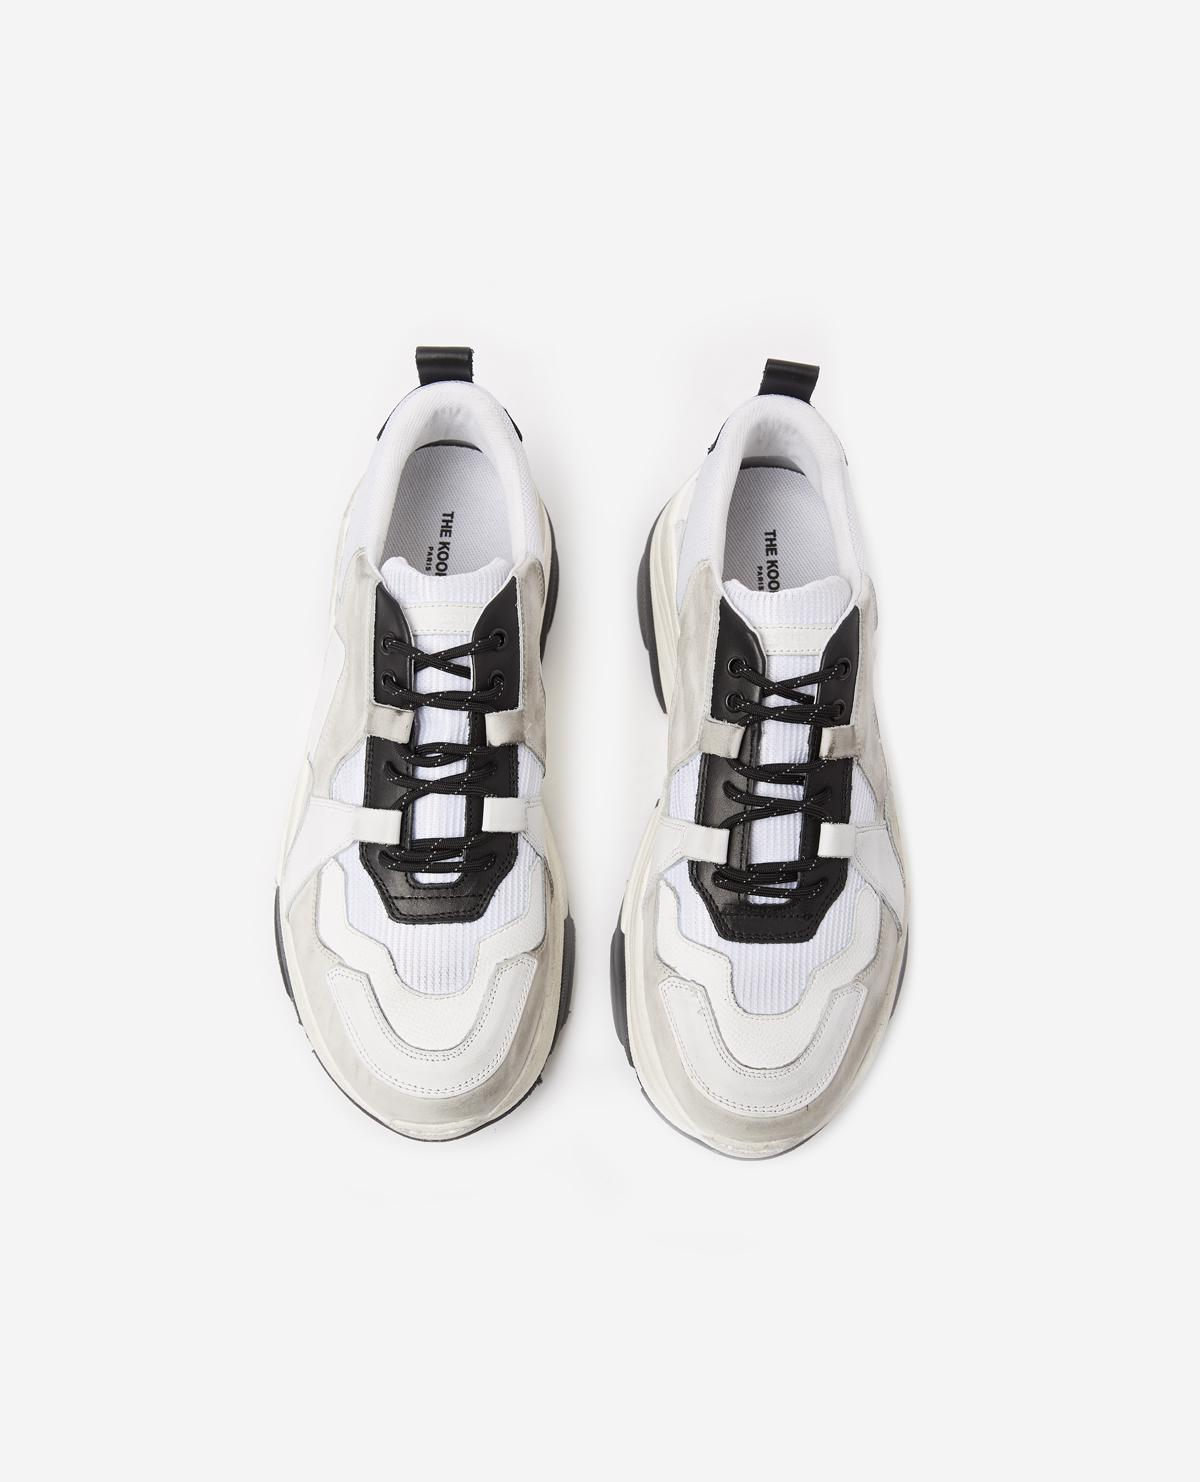 And Trainers Men Kooples Black White Chunky Leather For The ID2WEYH9